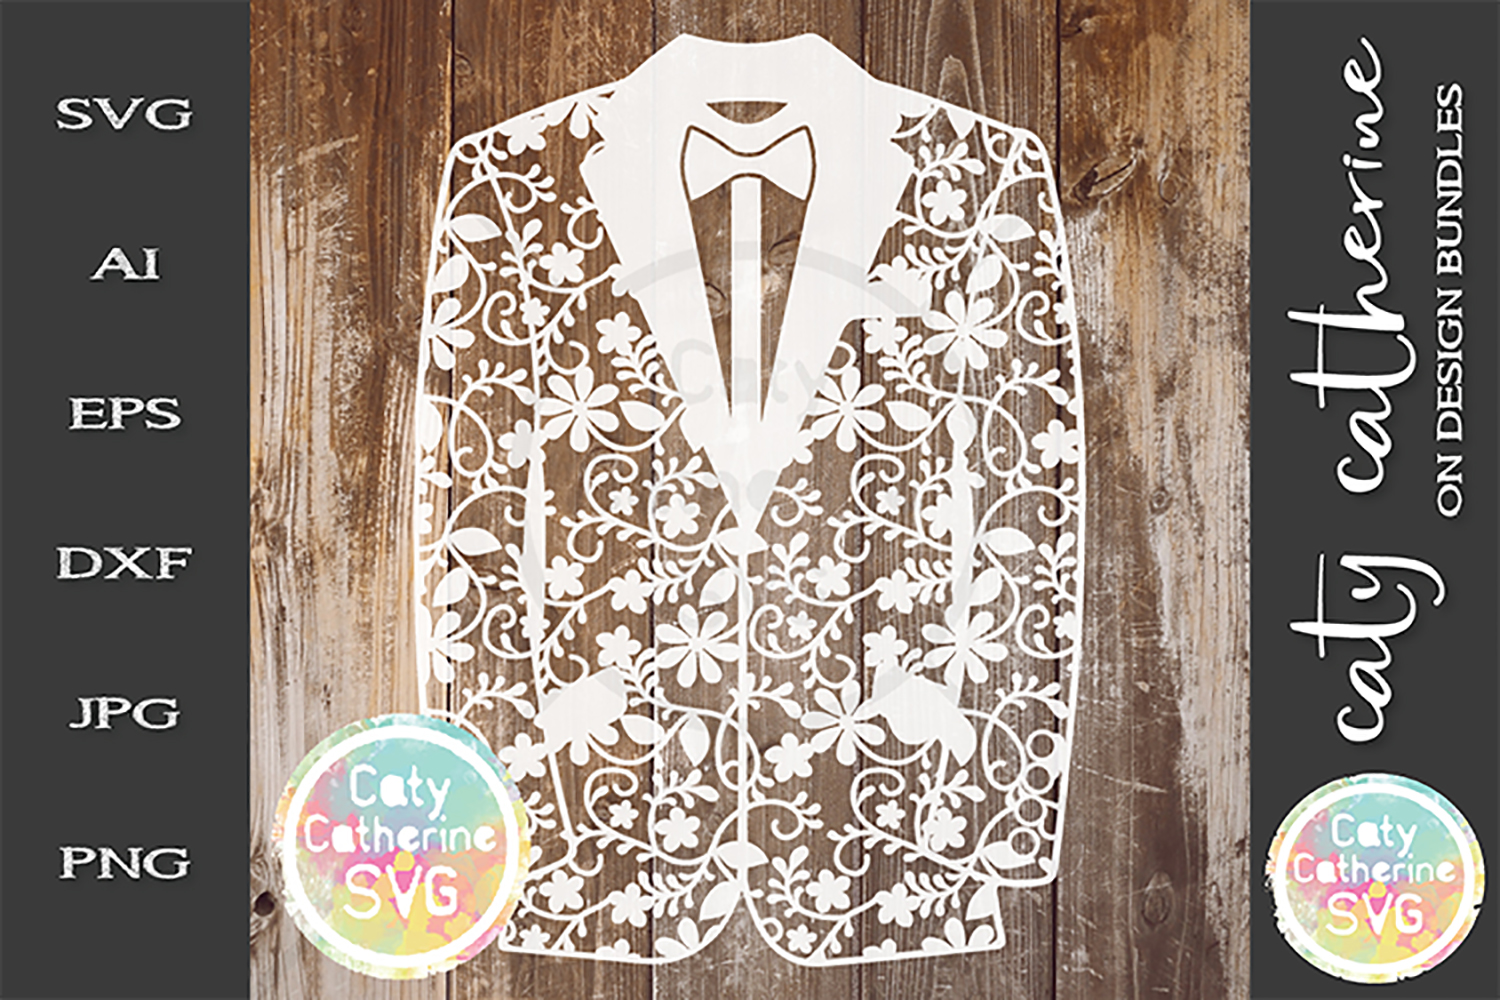 Groom Tuxedo Wedding Suit Pattern Papercut Bow Tie SVG example image 1